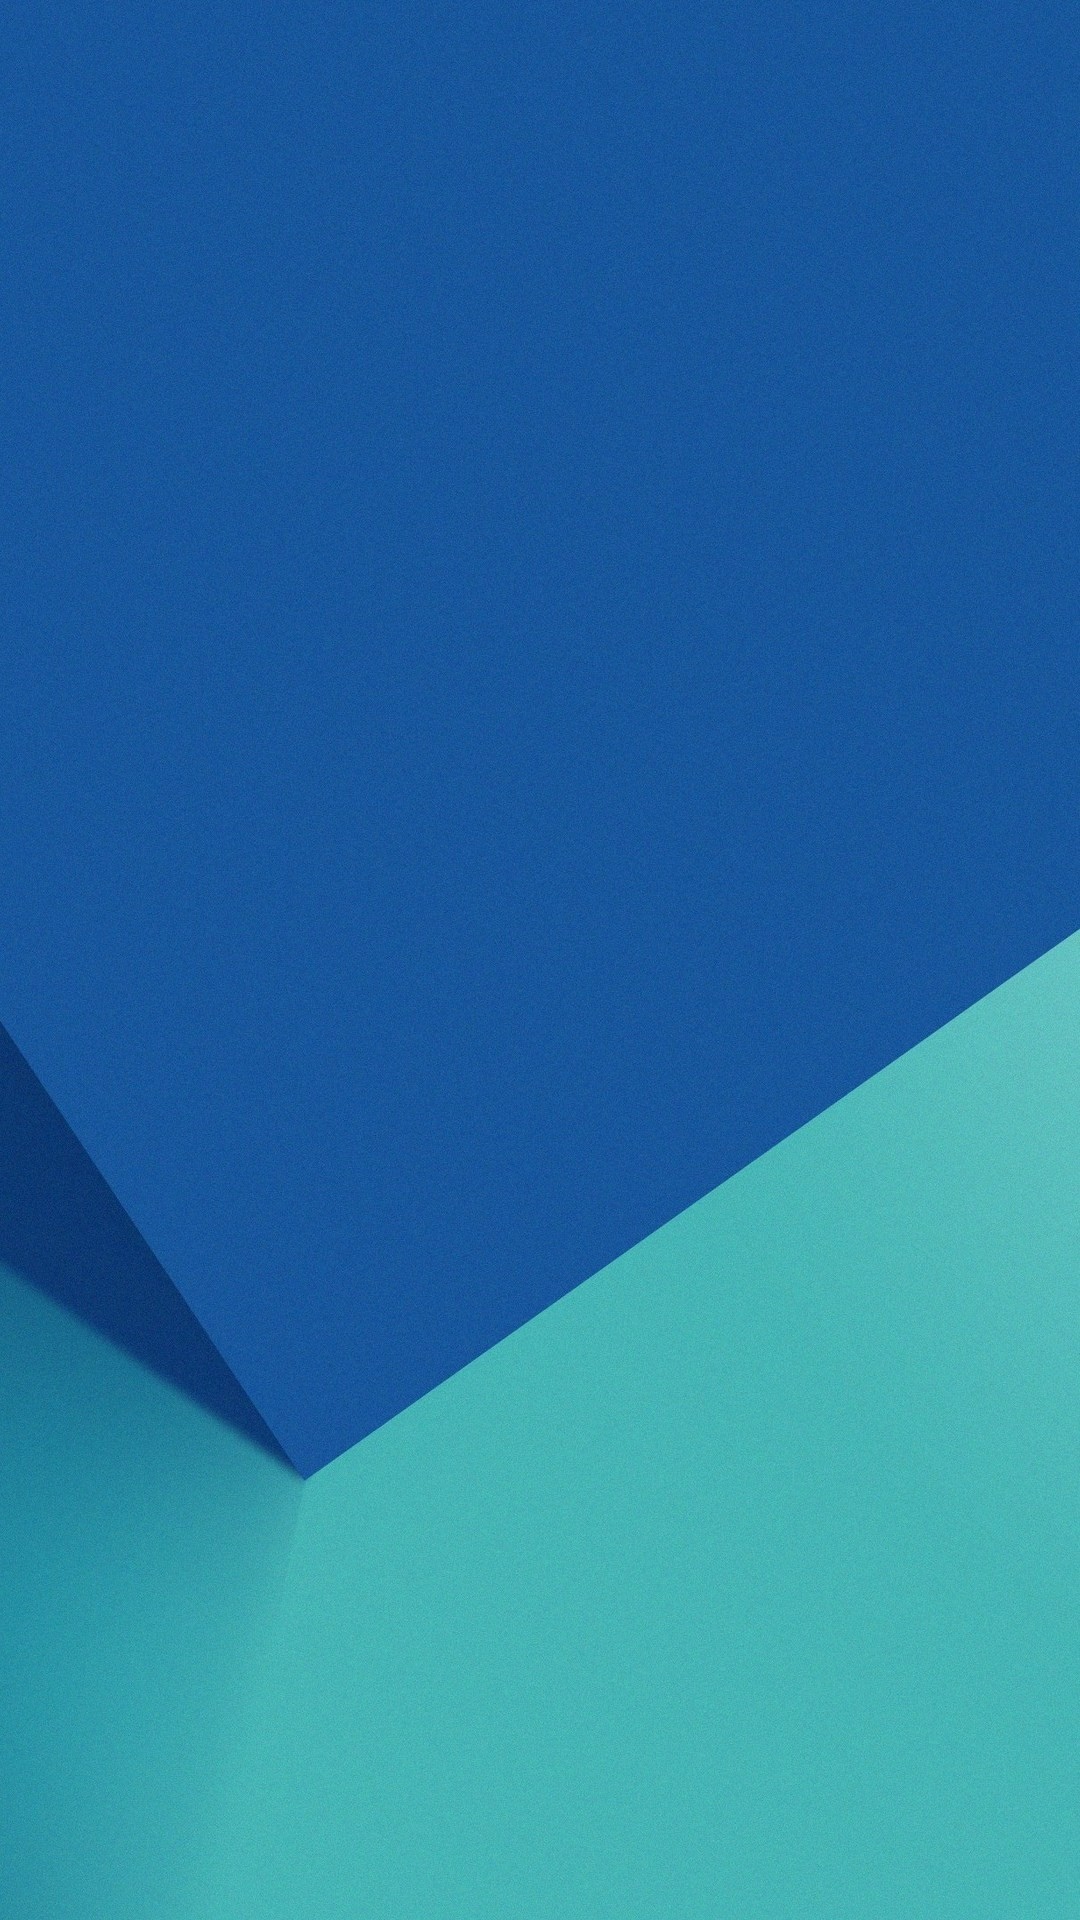 material design stock y7 wallpaper 1080x1920 380x676